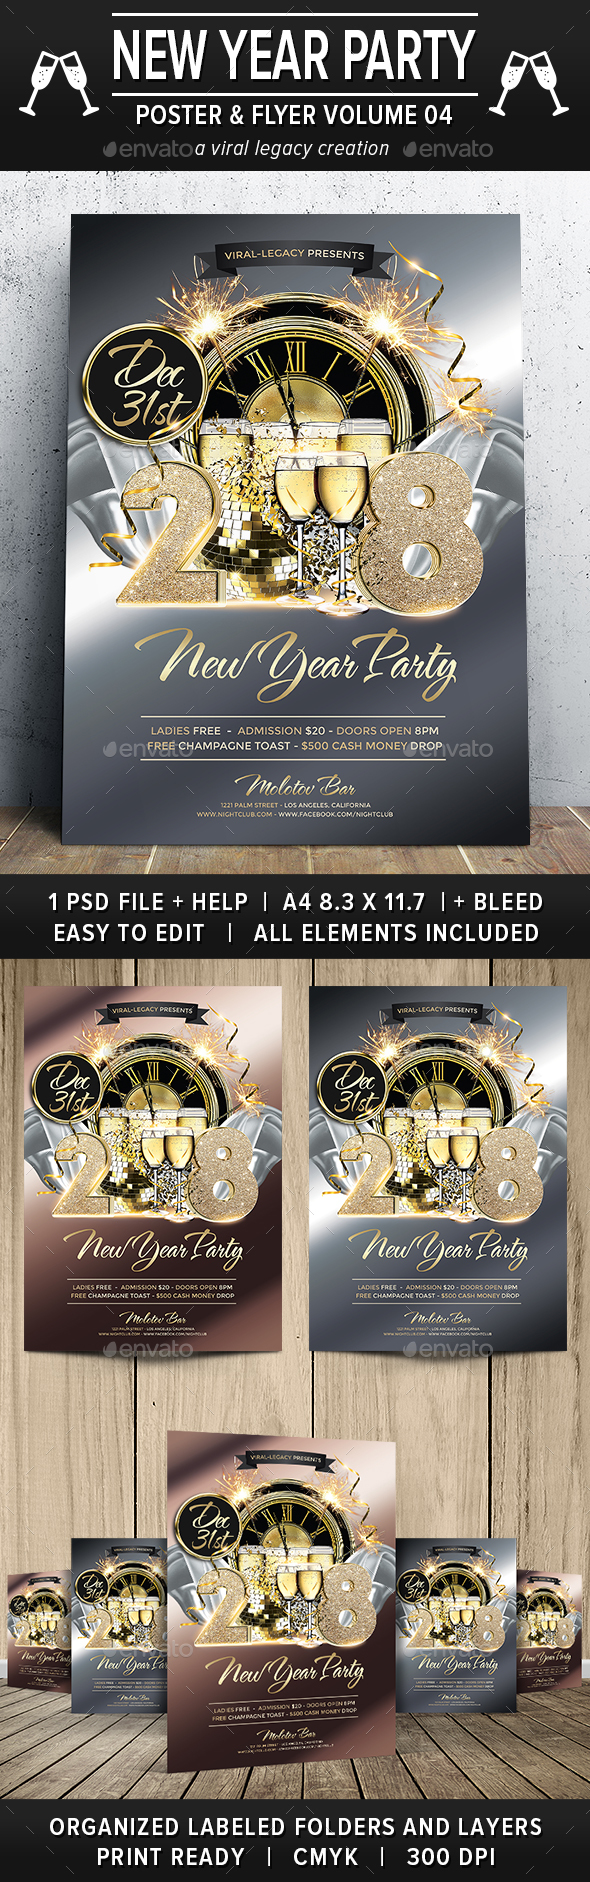 New Year Party Poster / Flyer V04 - Events Flyers